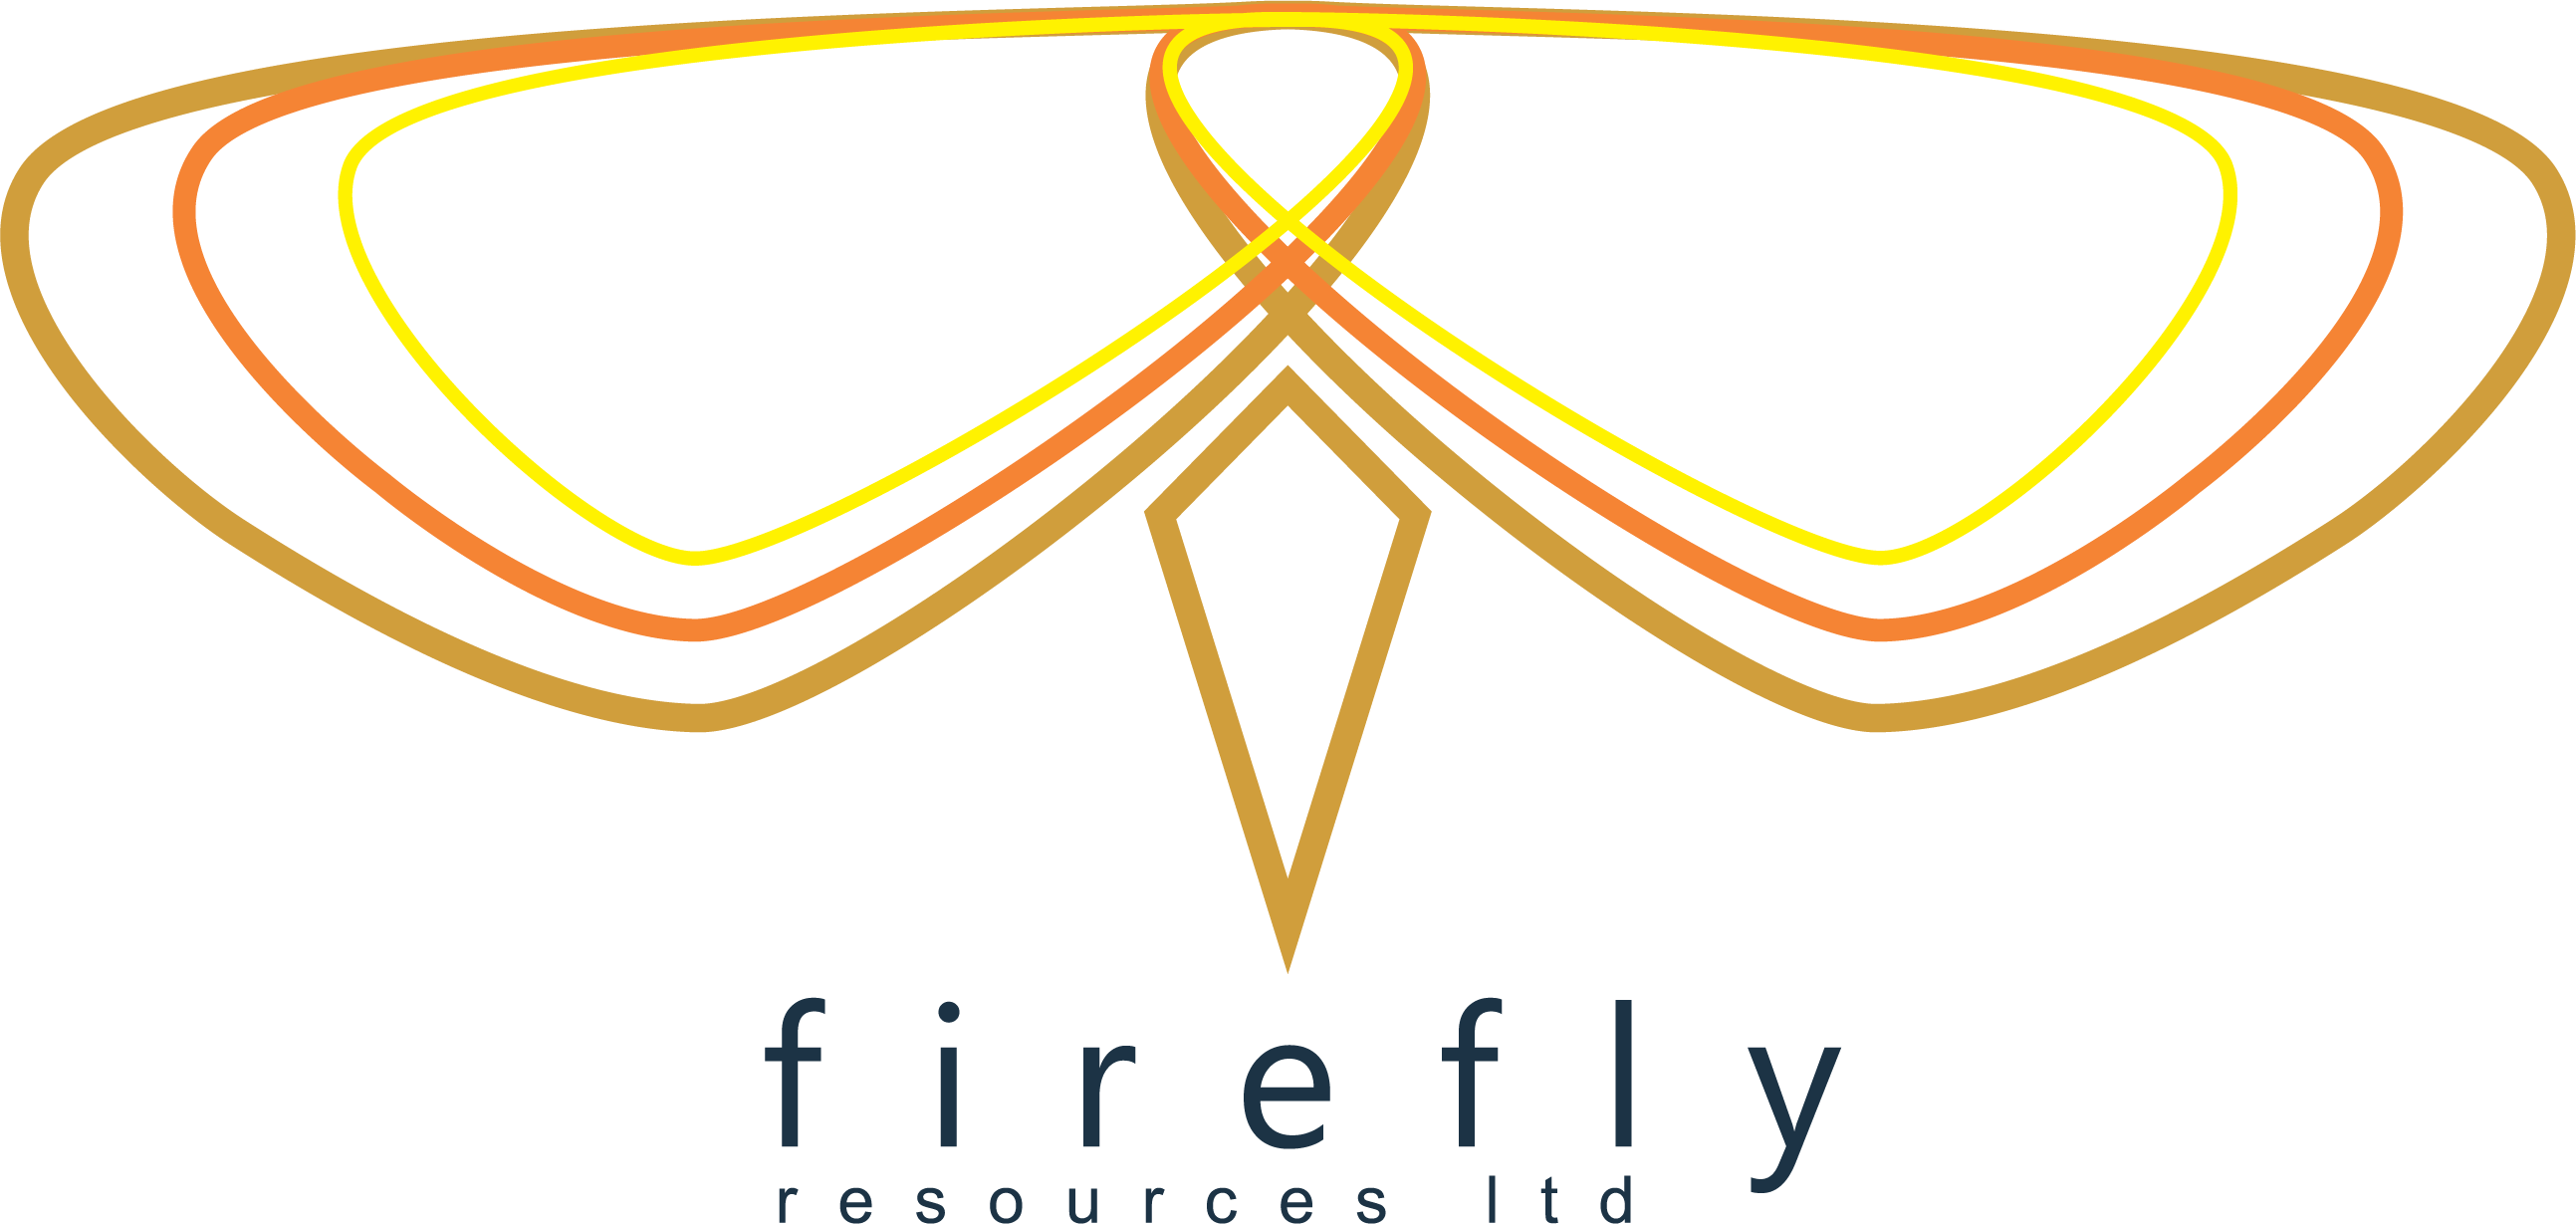 Firefly Resources